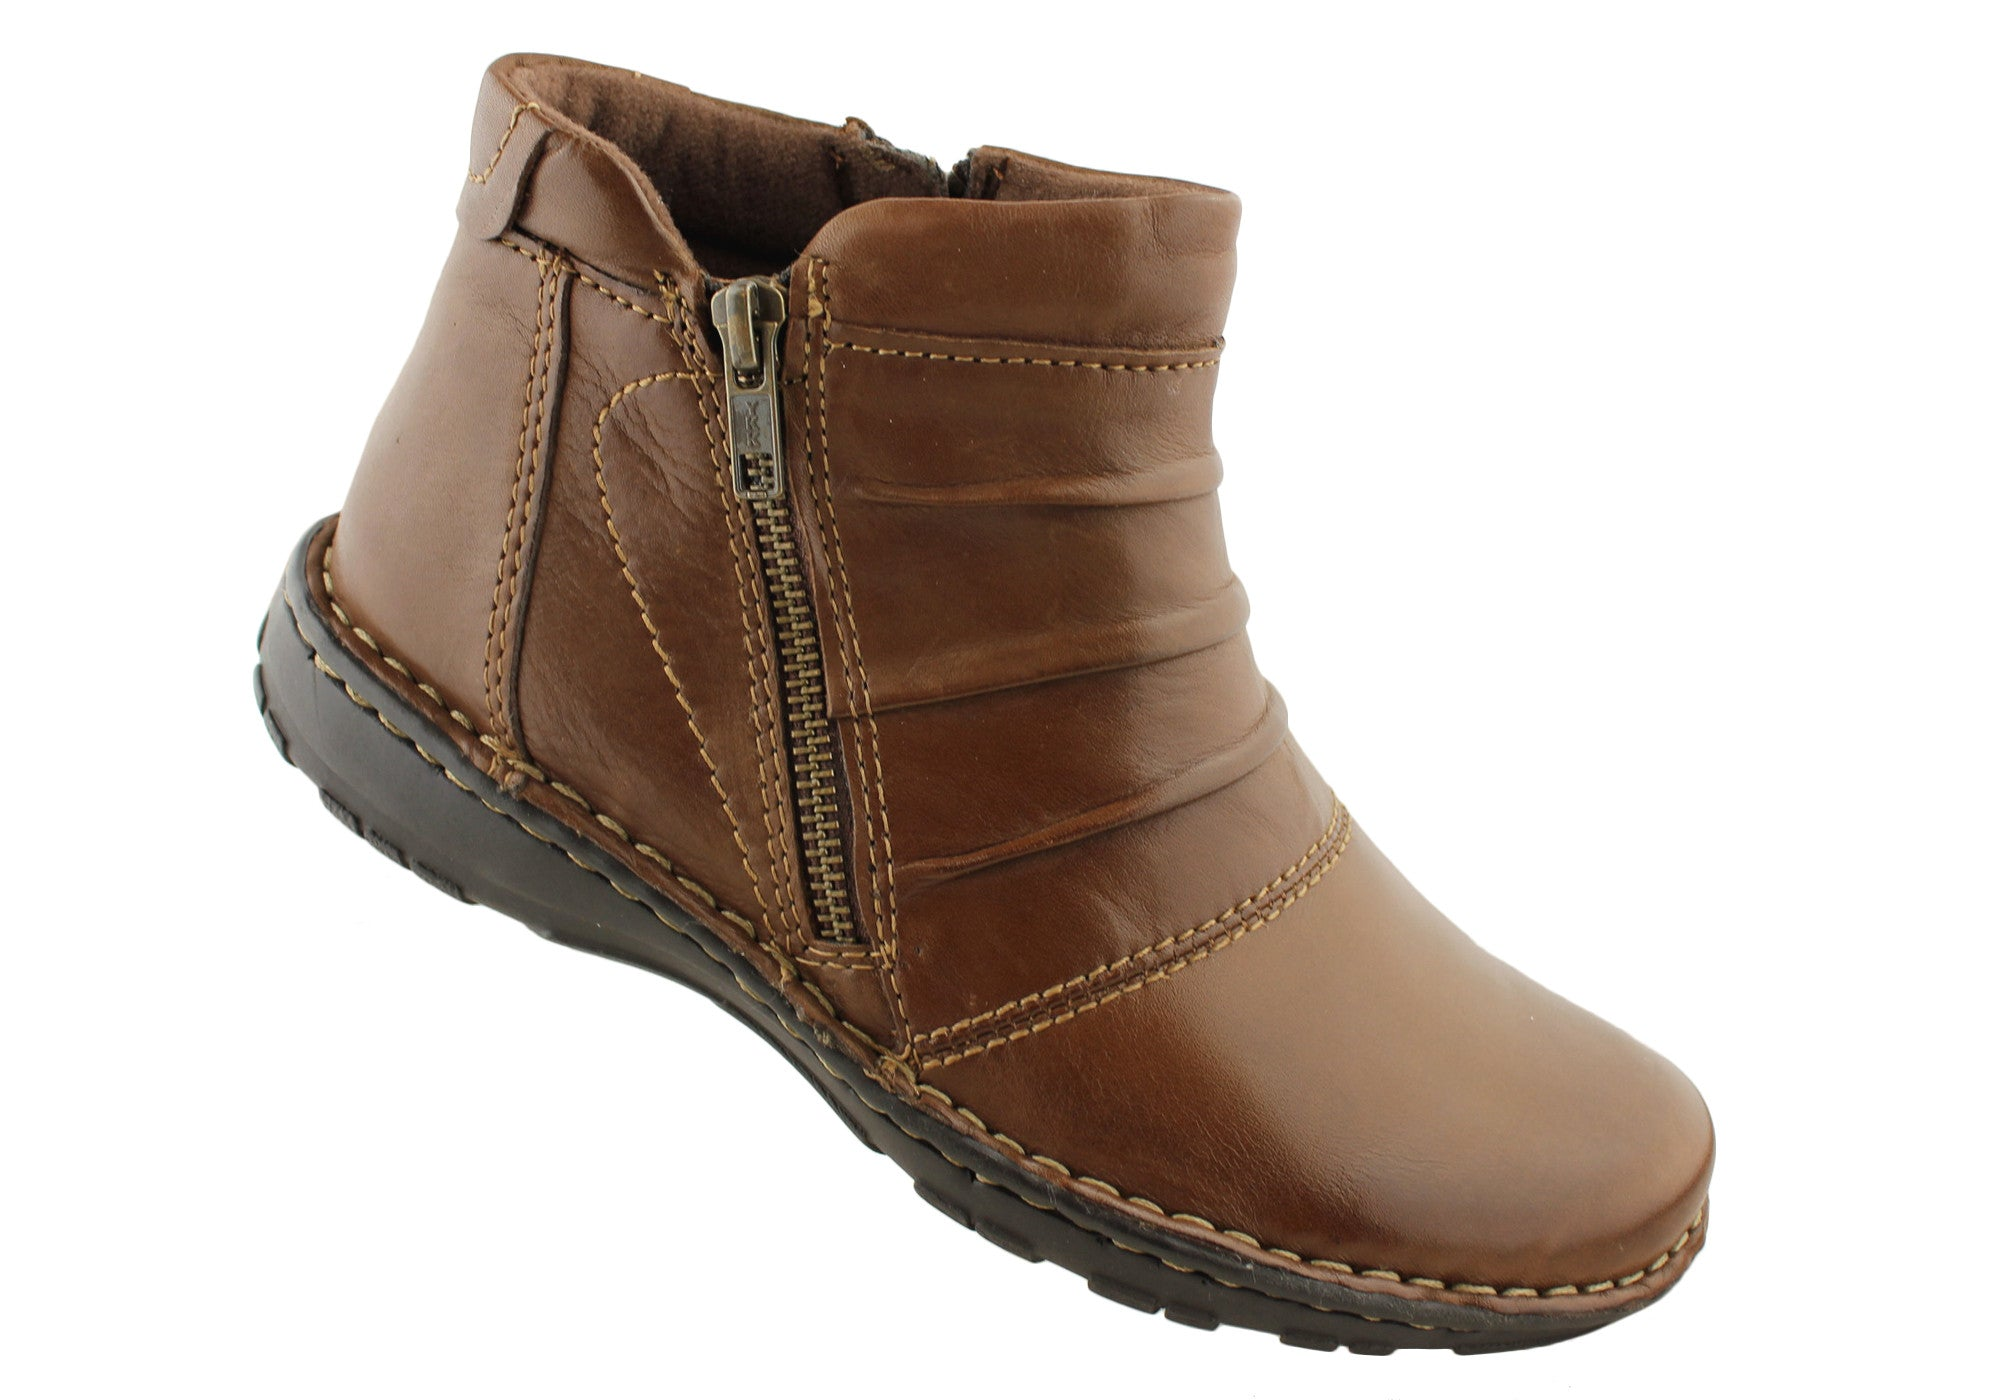 Planet Shoes Lootah Womens Comfort Ankle Boots